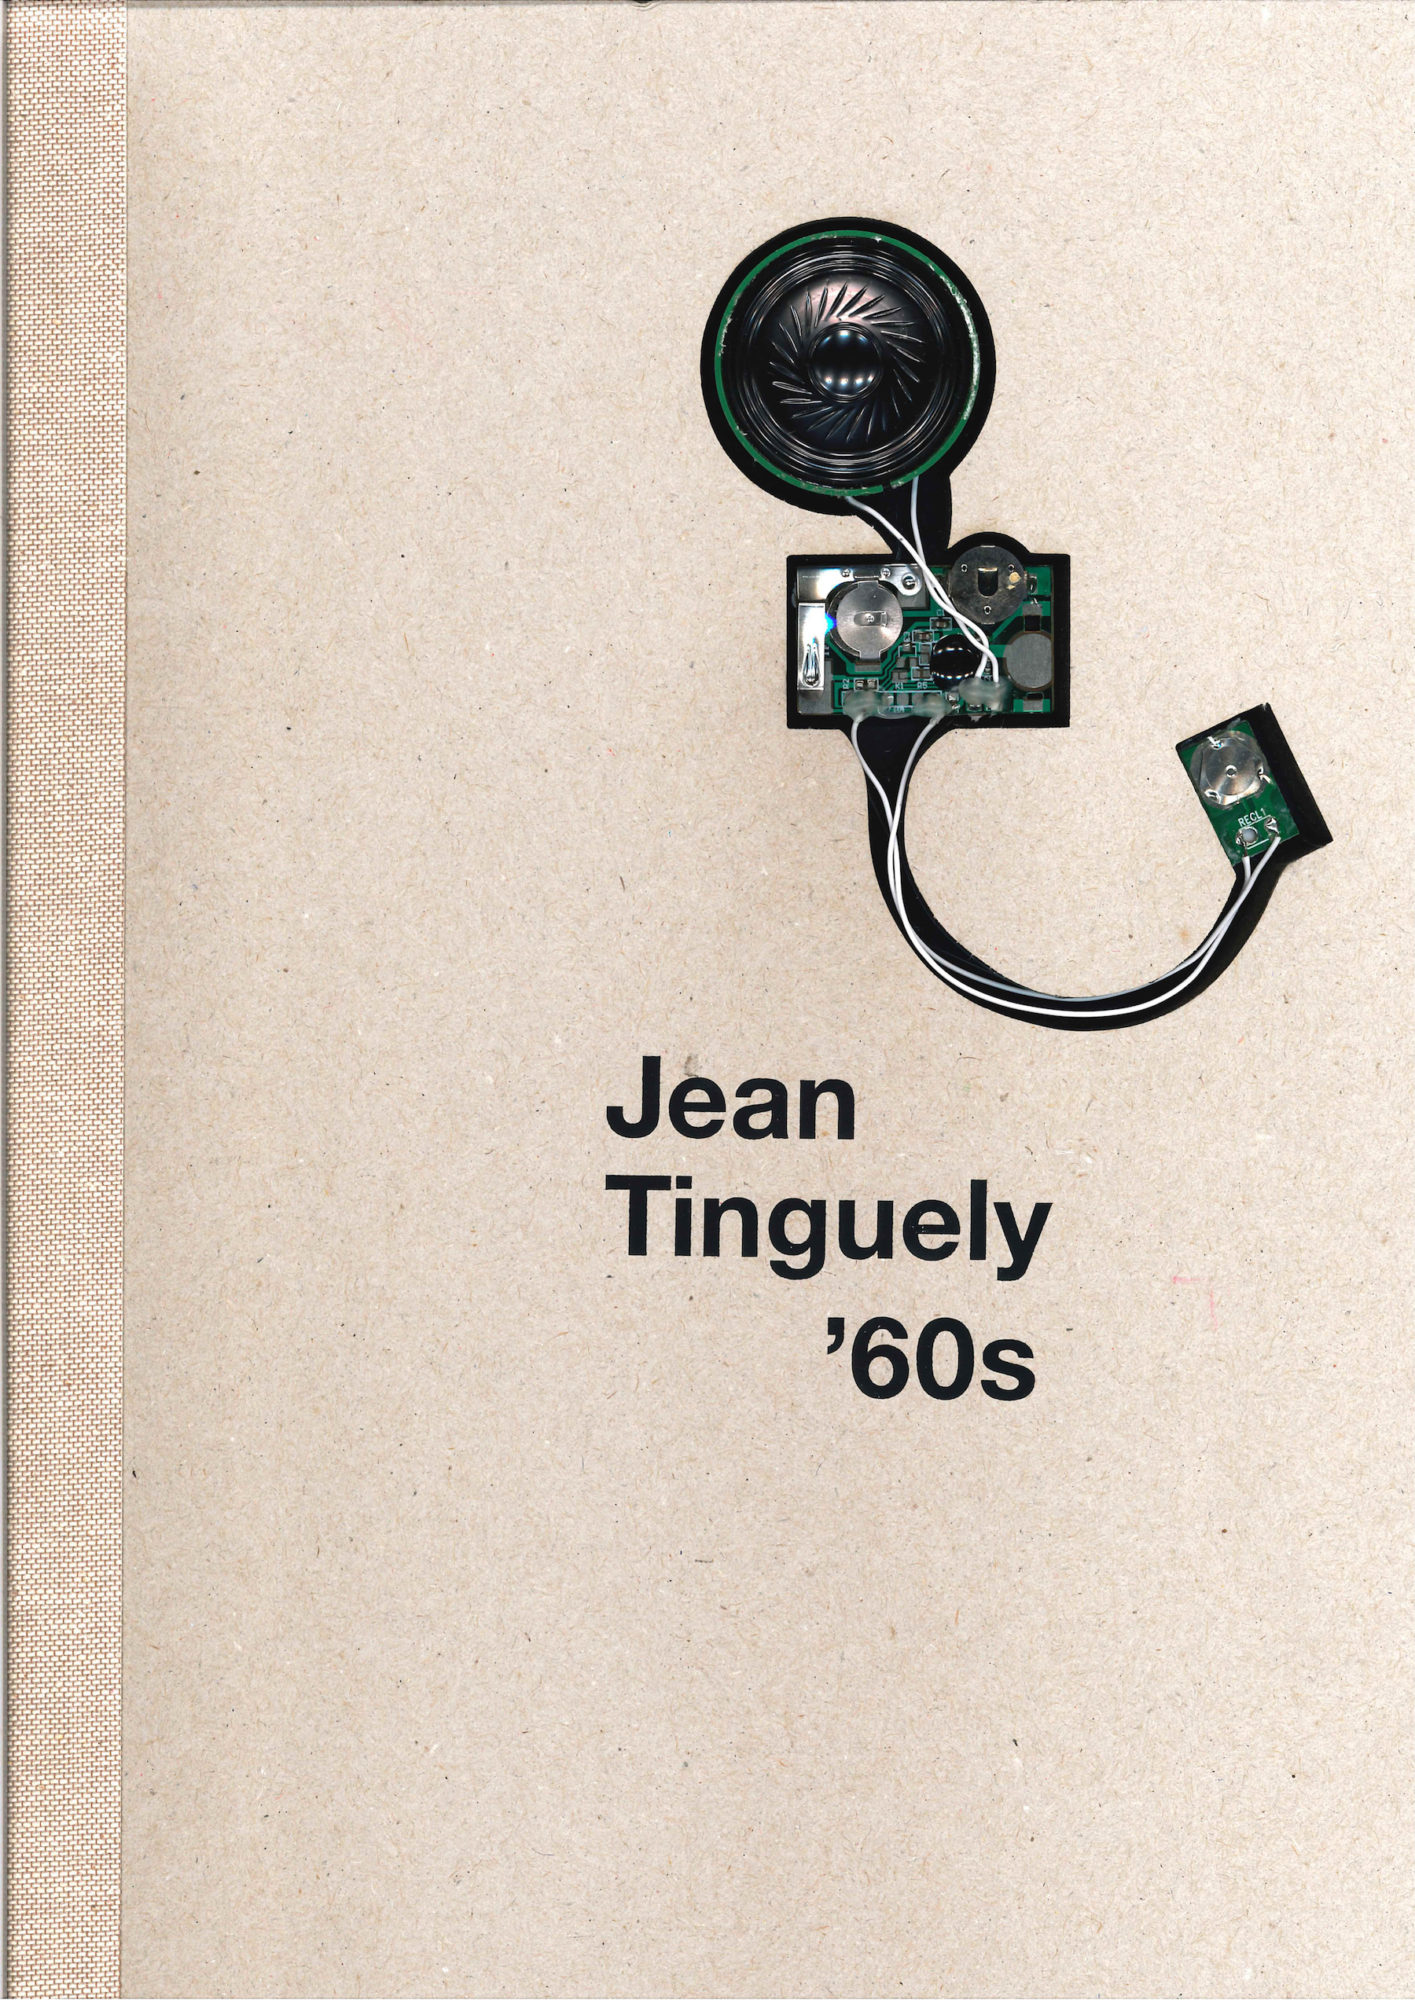 Jean Tinguely '60s - Galerie Georges-Philippe & Nathalie Vallois